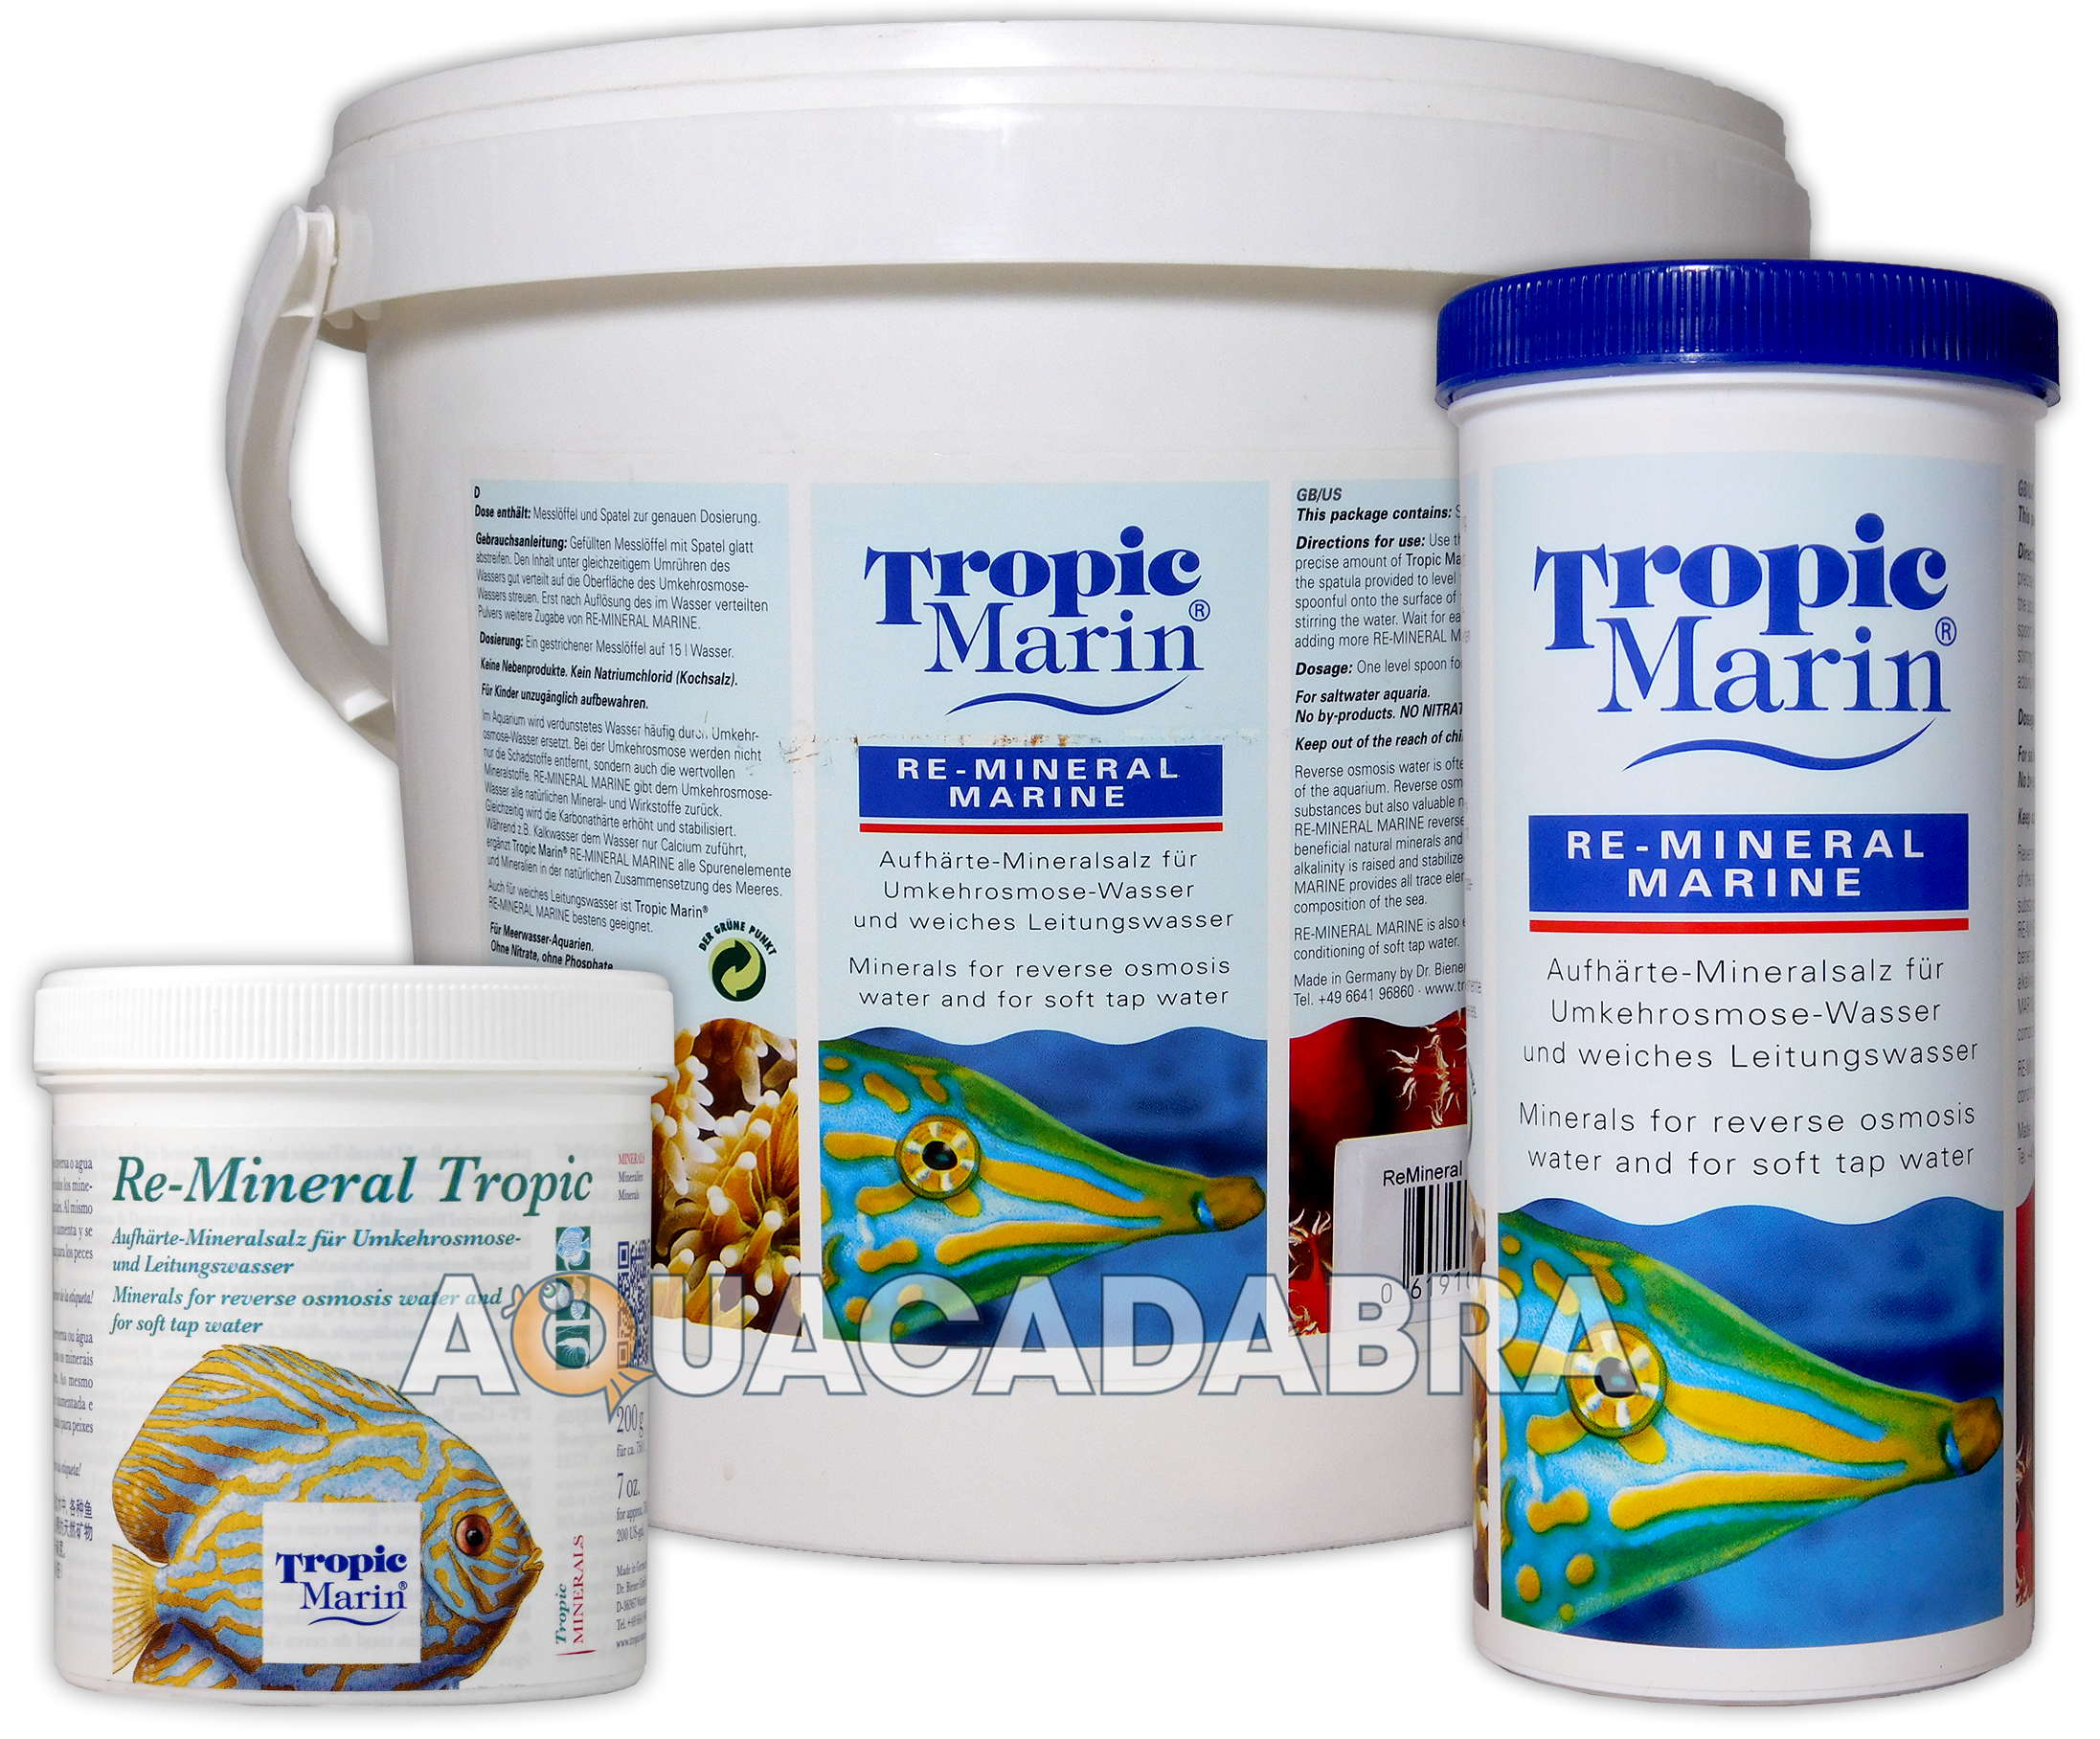 Details about TMC TROPIC MARIN RE-MINERAL MARINE/TROPICAL 200G/4 55KG  AQUARIUM FISH TANK